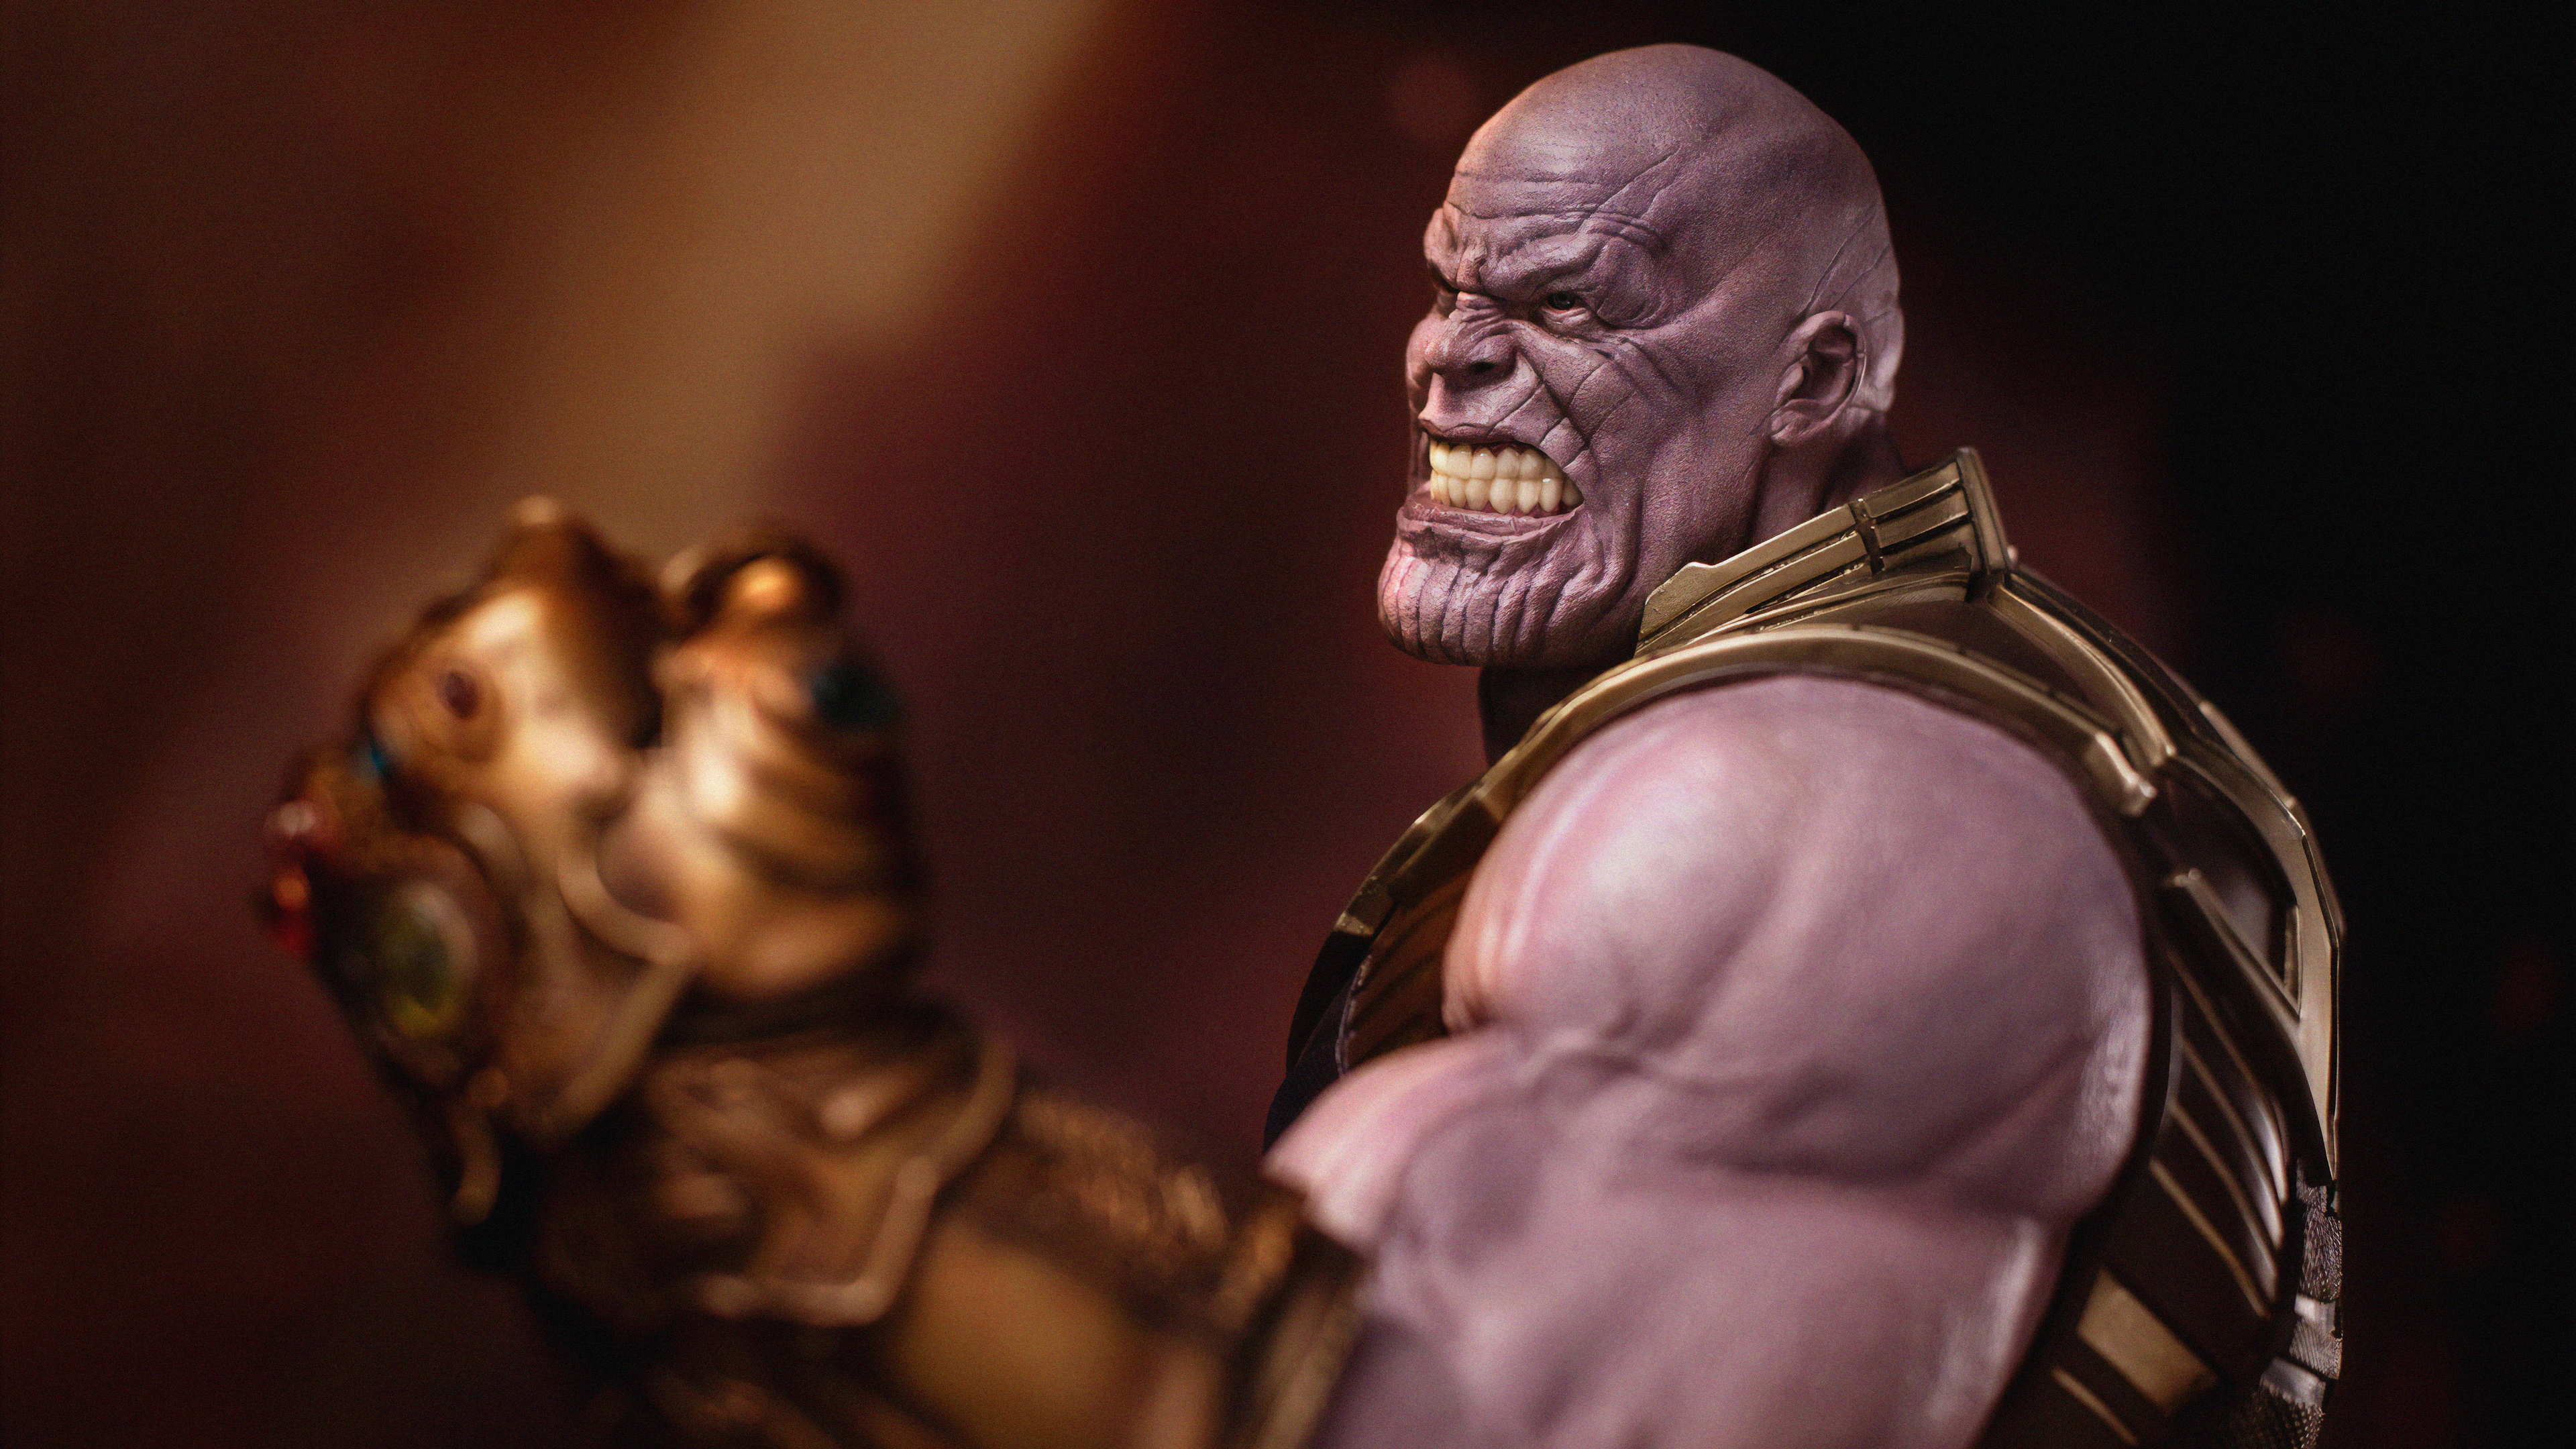 thanos new 1563219636 - Thanos New - thanos-wallpapers, supervillain wallpapers, superheroes wallpapers, hd-wallpapers, digital art wallpapers, artwork wallpapers, 4k-wallpapers